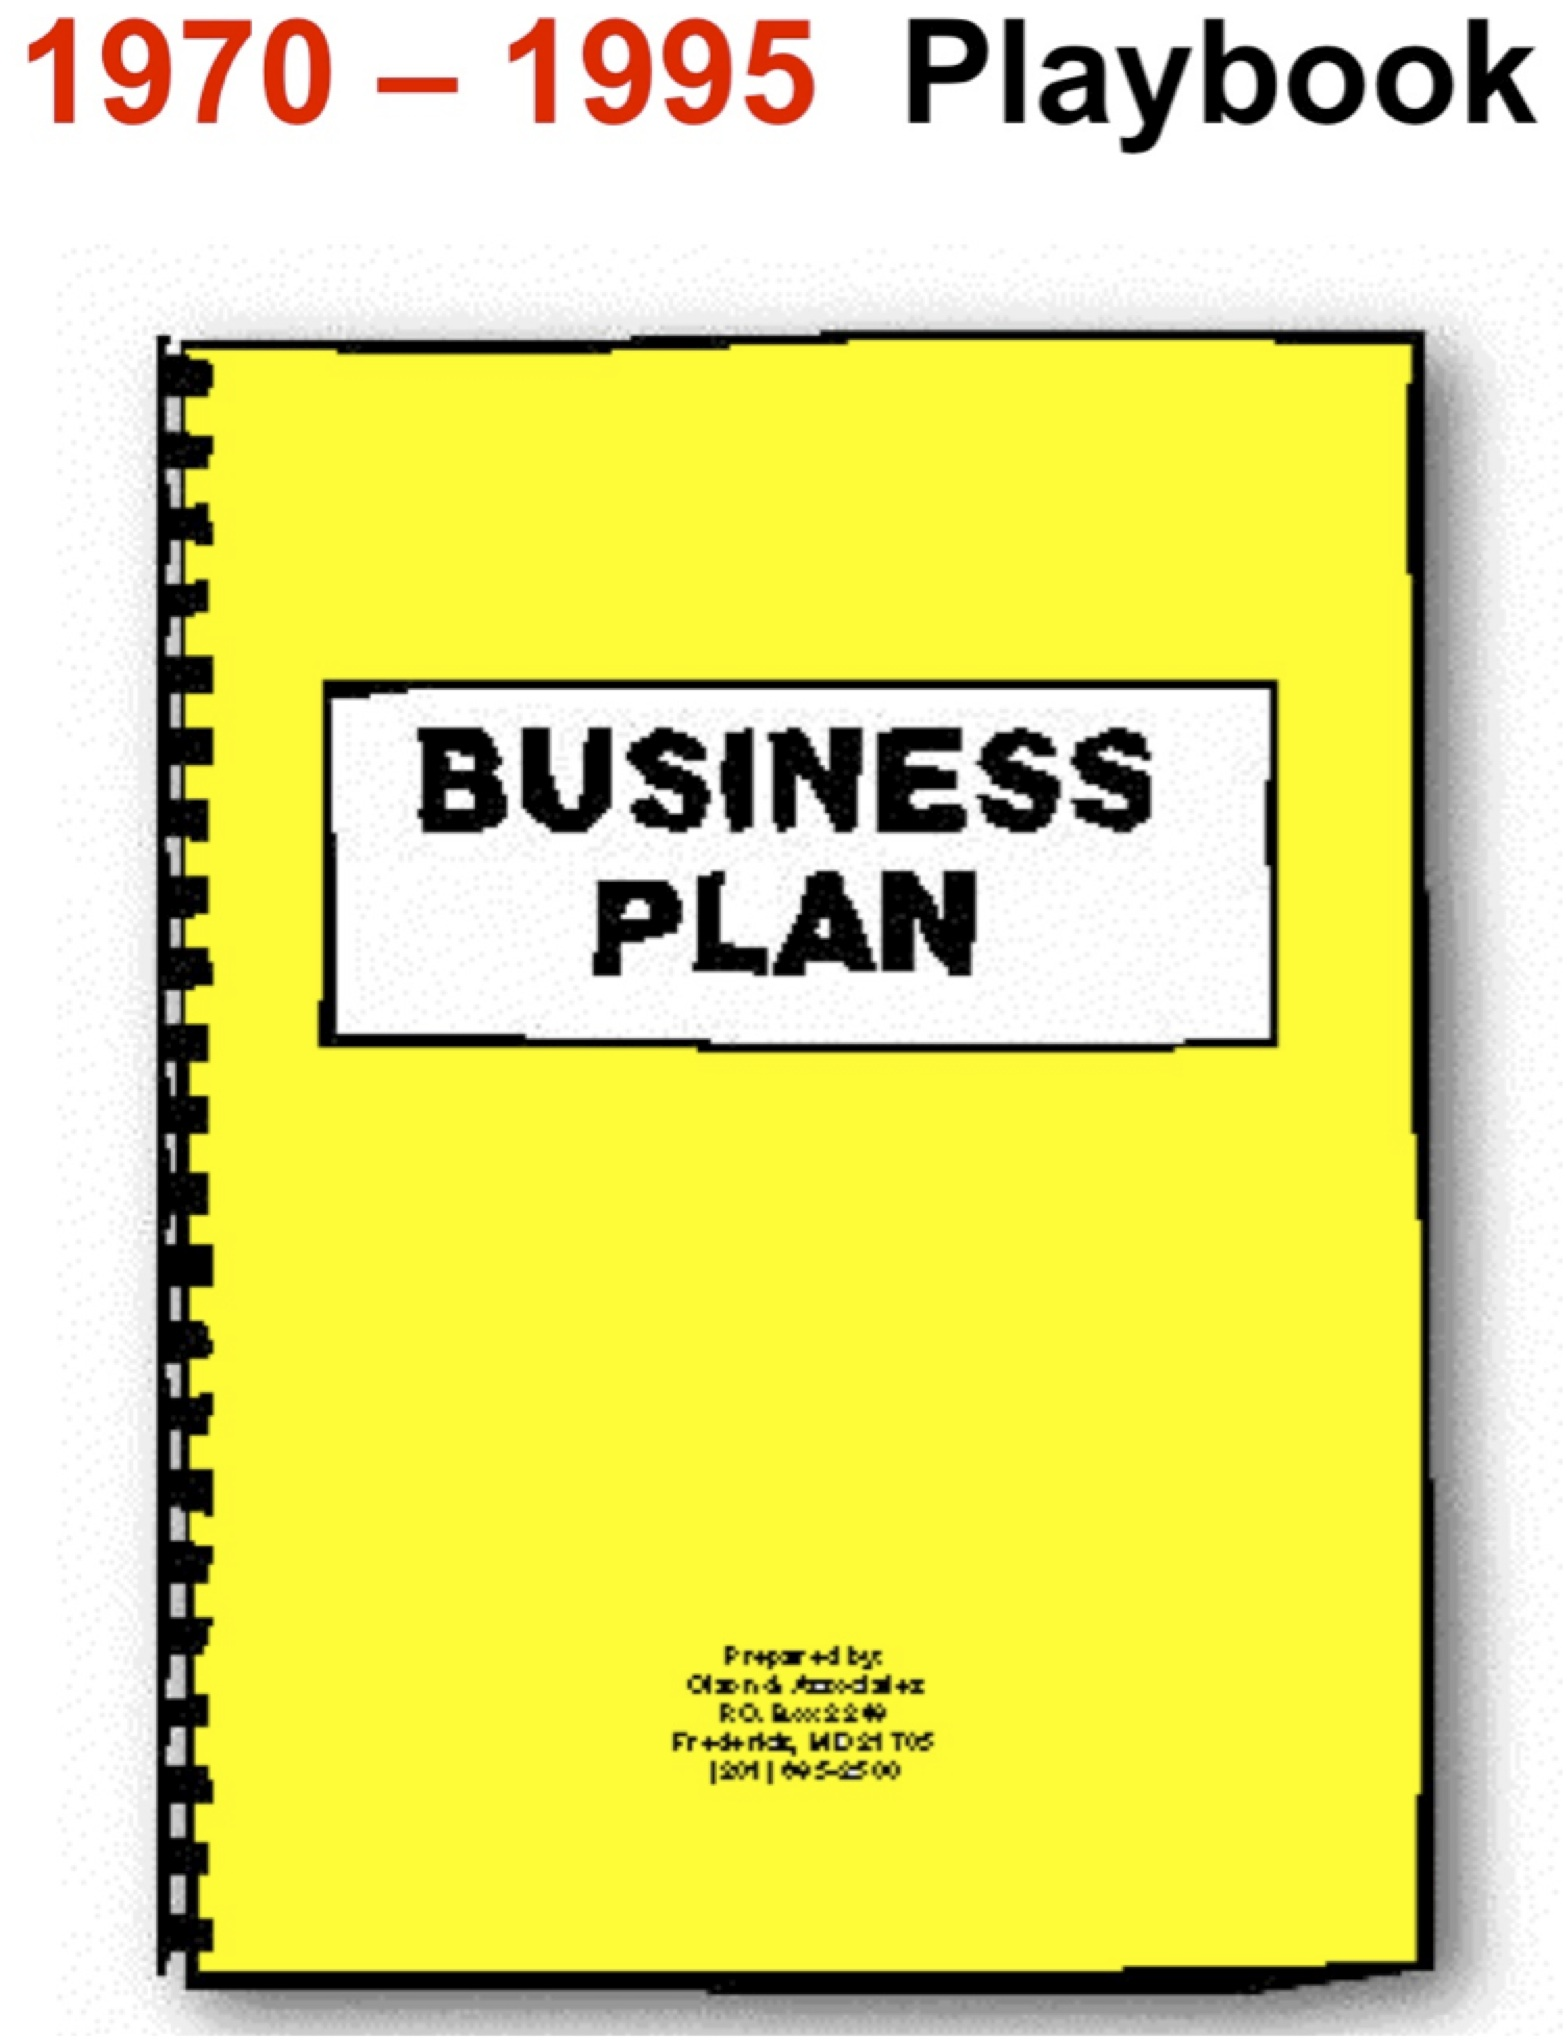 Fine dining business plan image 3